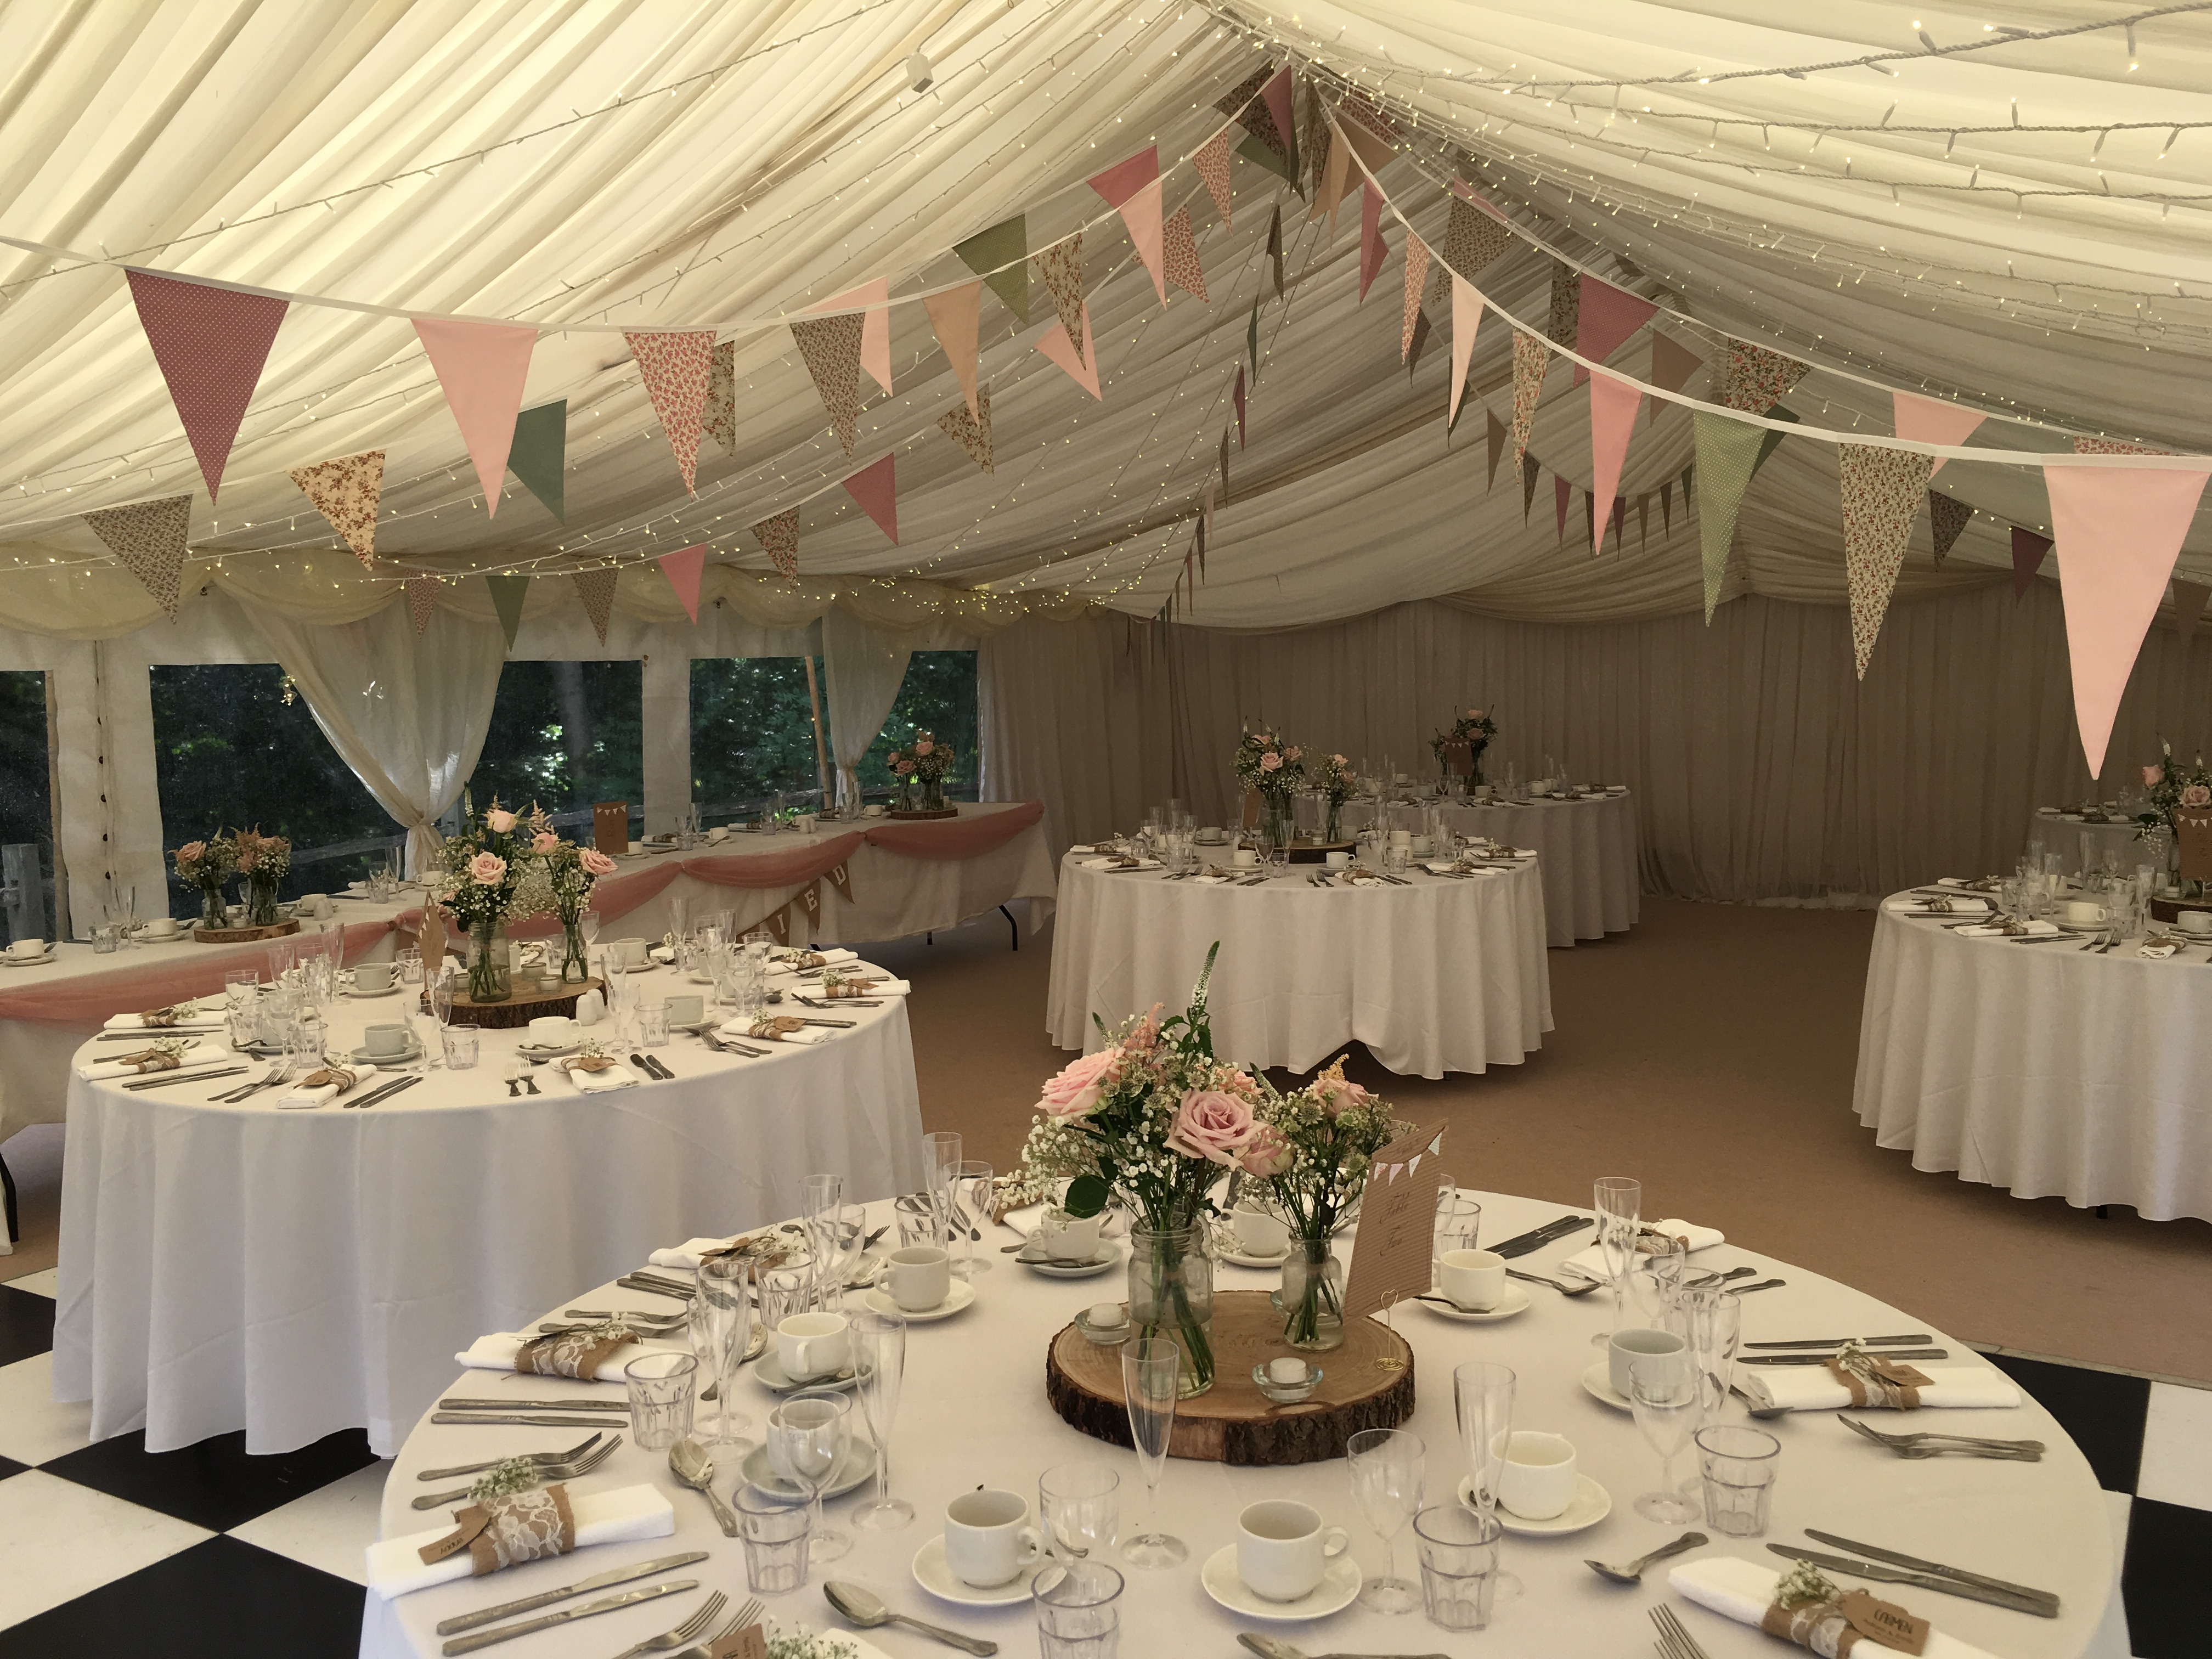 Rustic wedding at Eccessall Woods Dicovery Centre Sophia's Final Touch - Venue Styling - Weddings